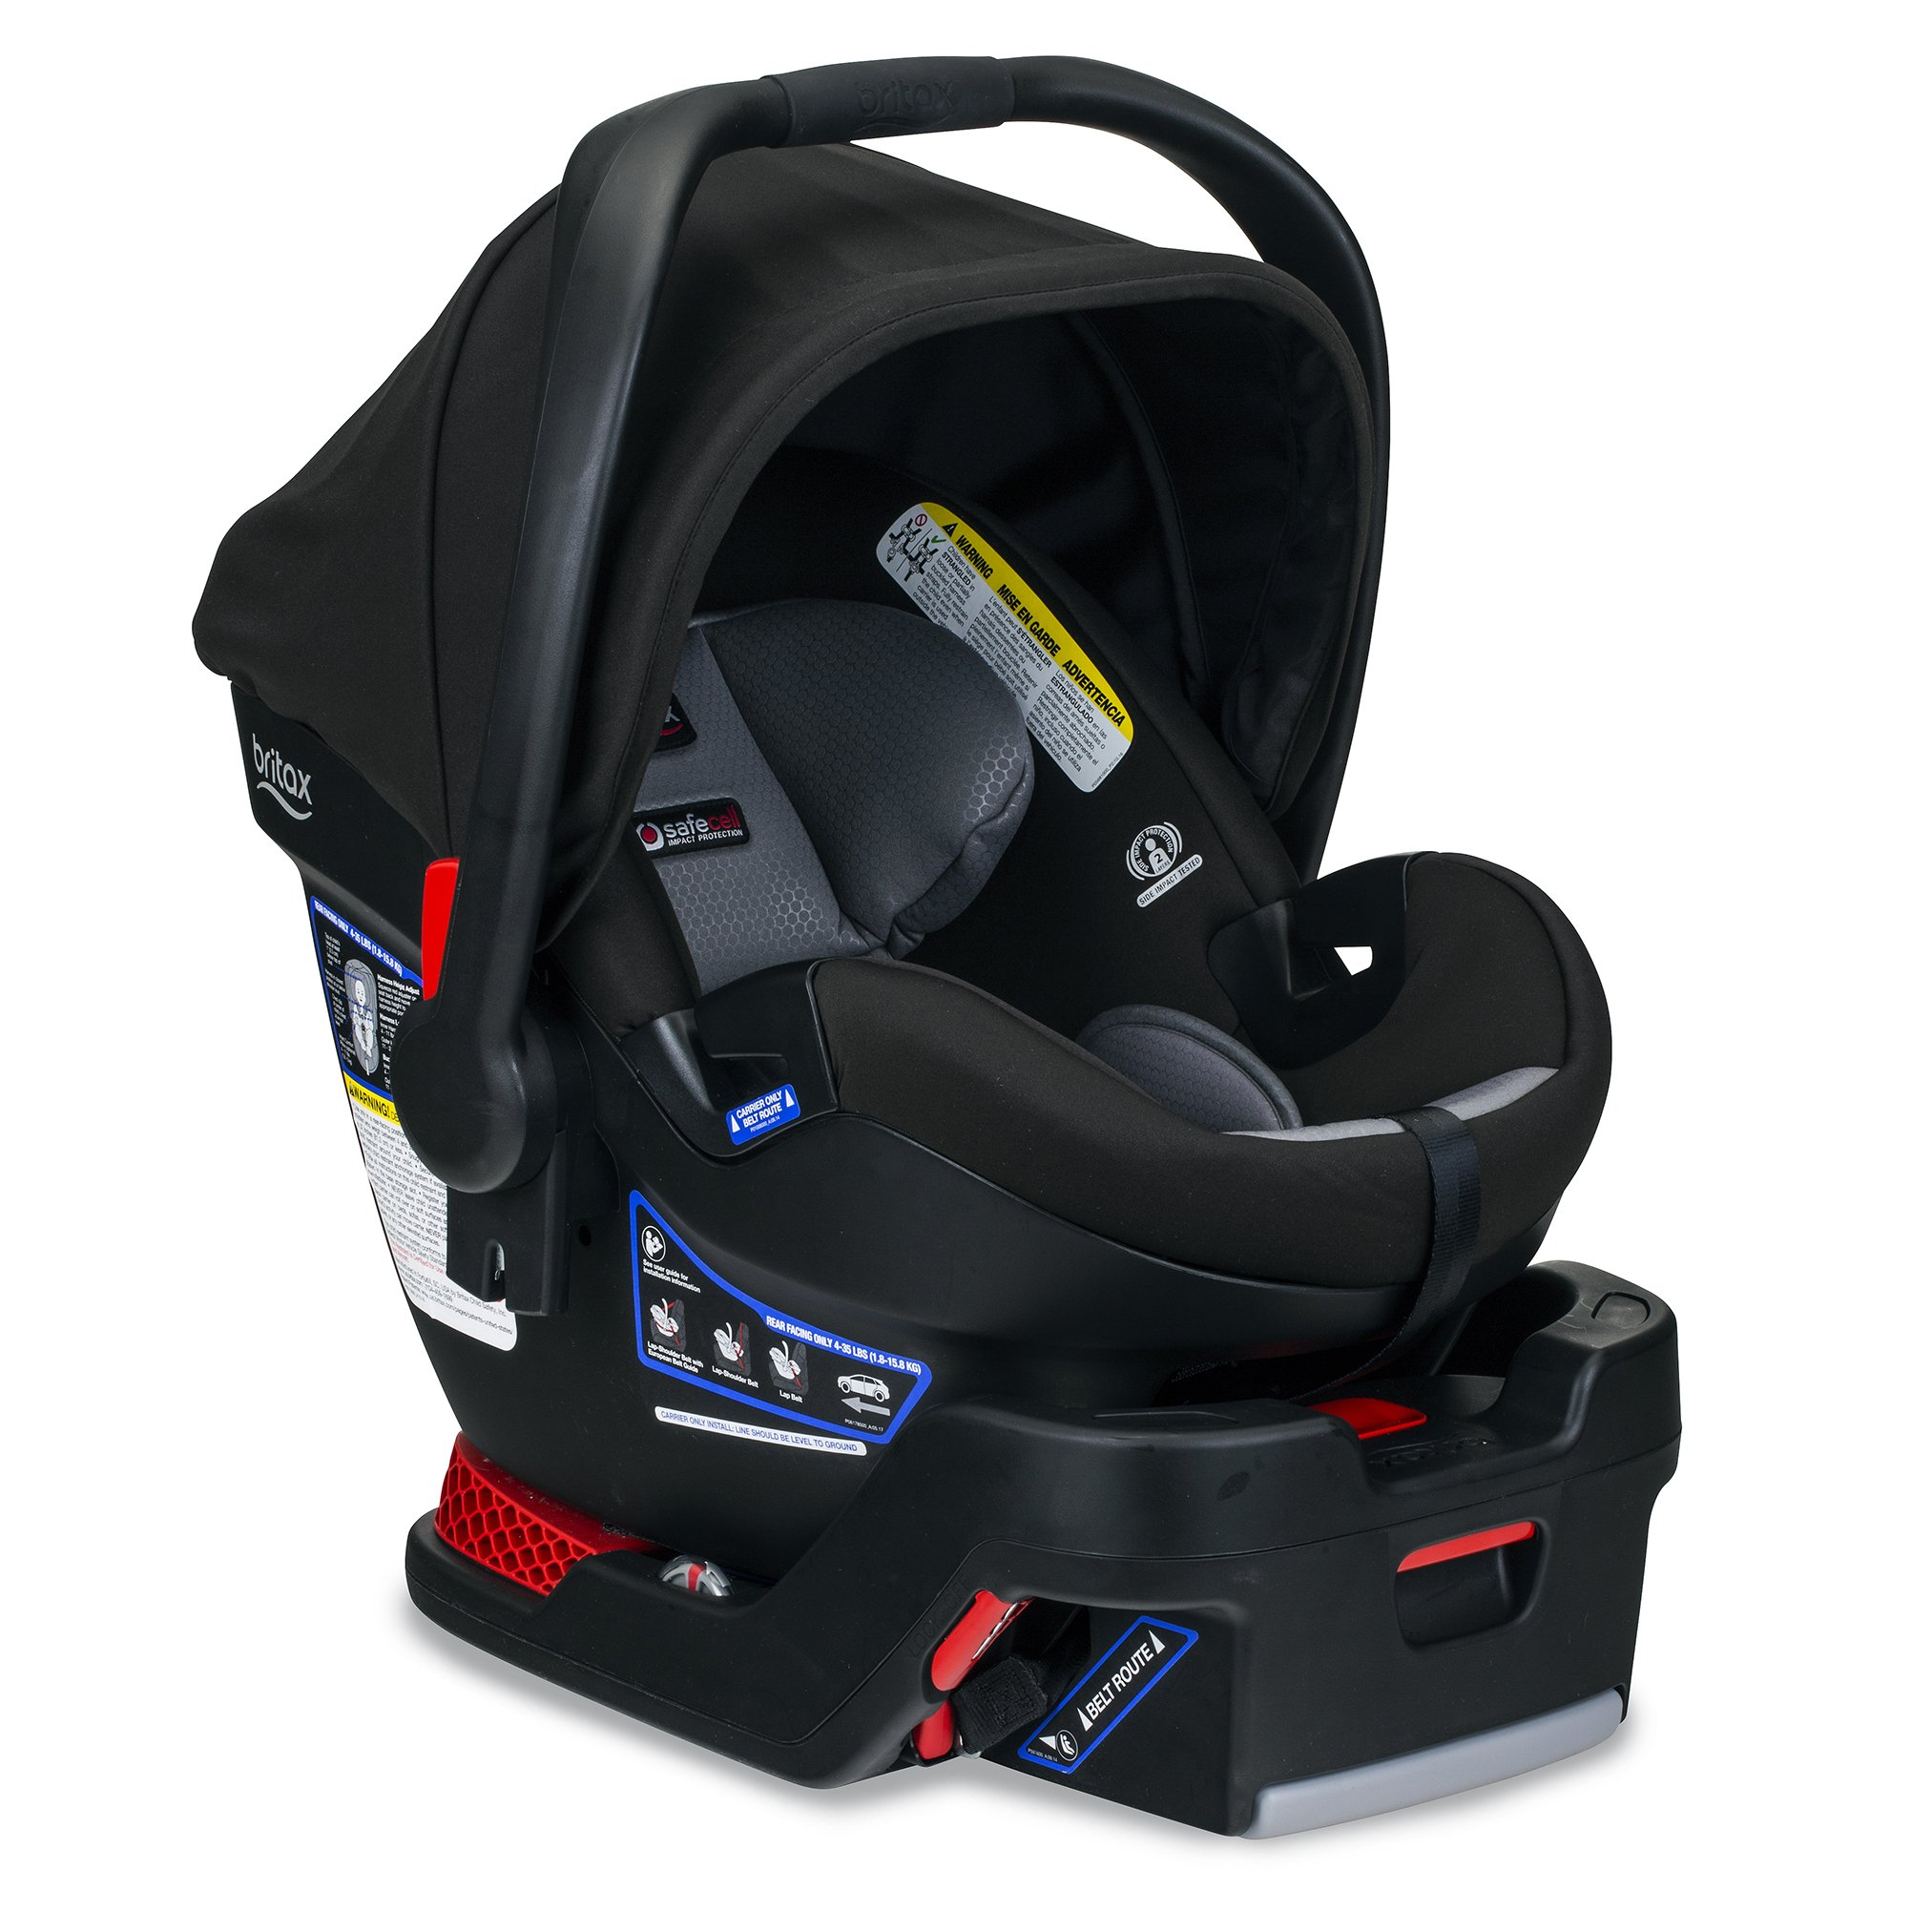 britax b safe ultra infant car seat. Black Bedroom Furniture Sets. Home Design Ideas